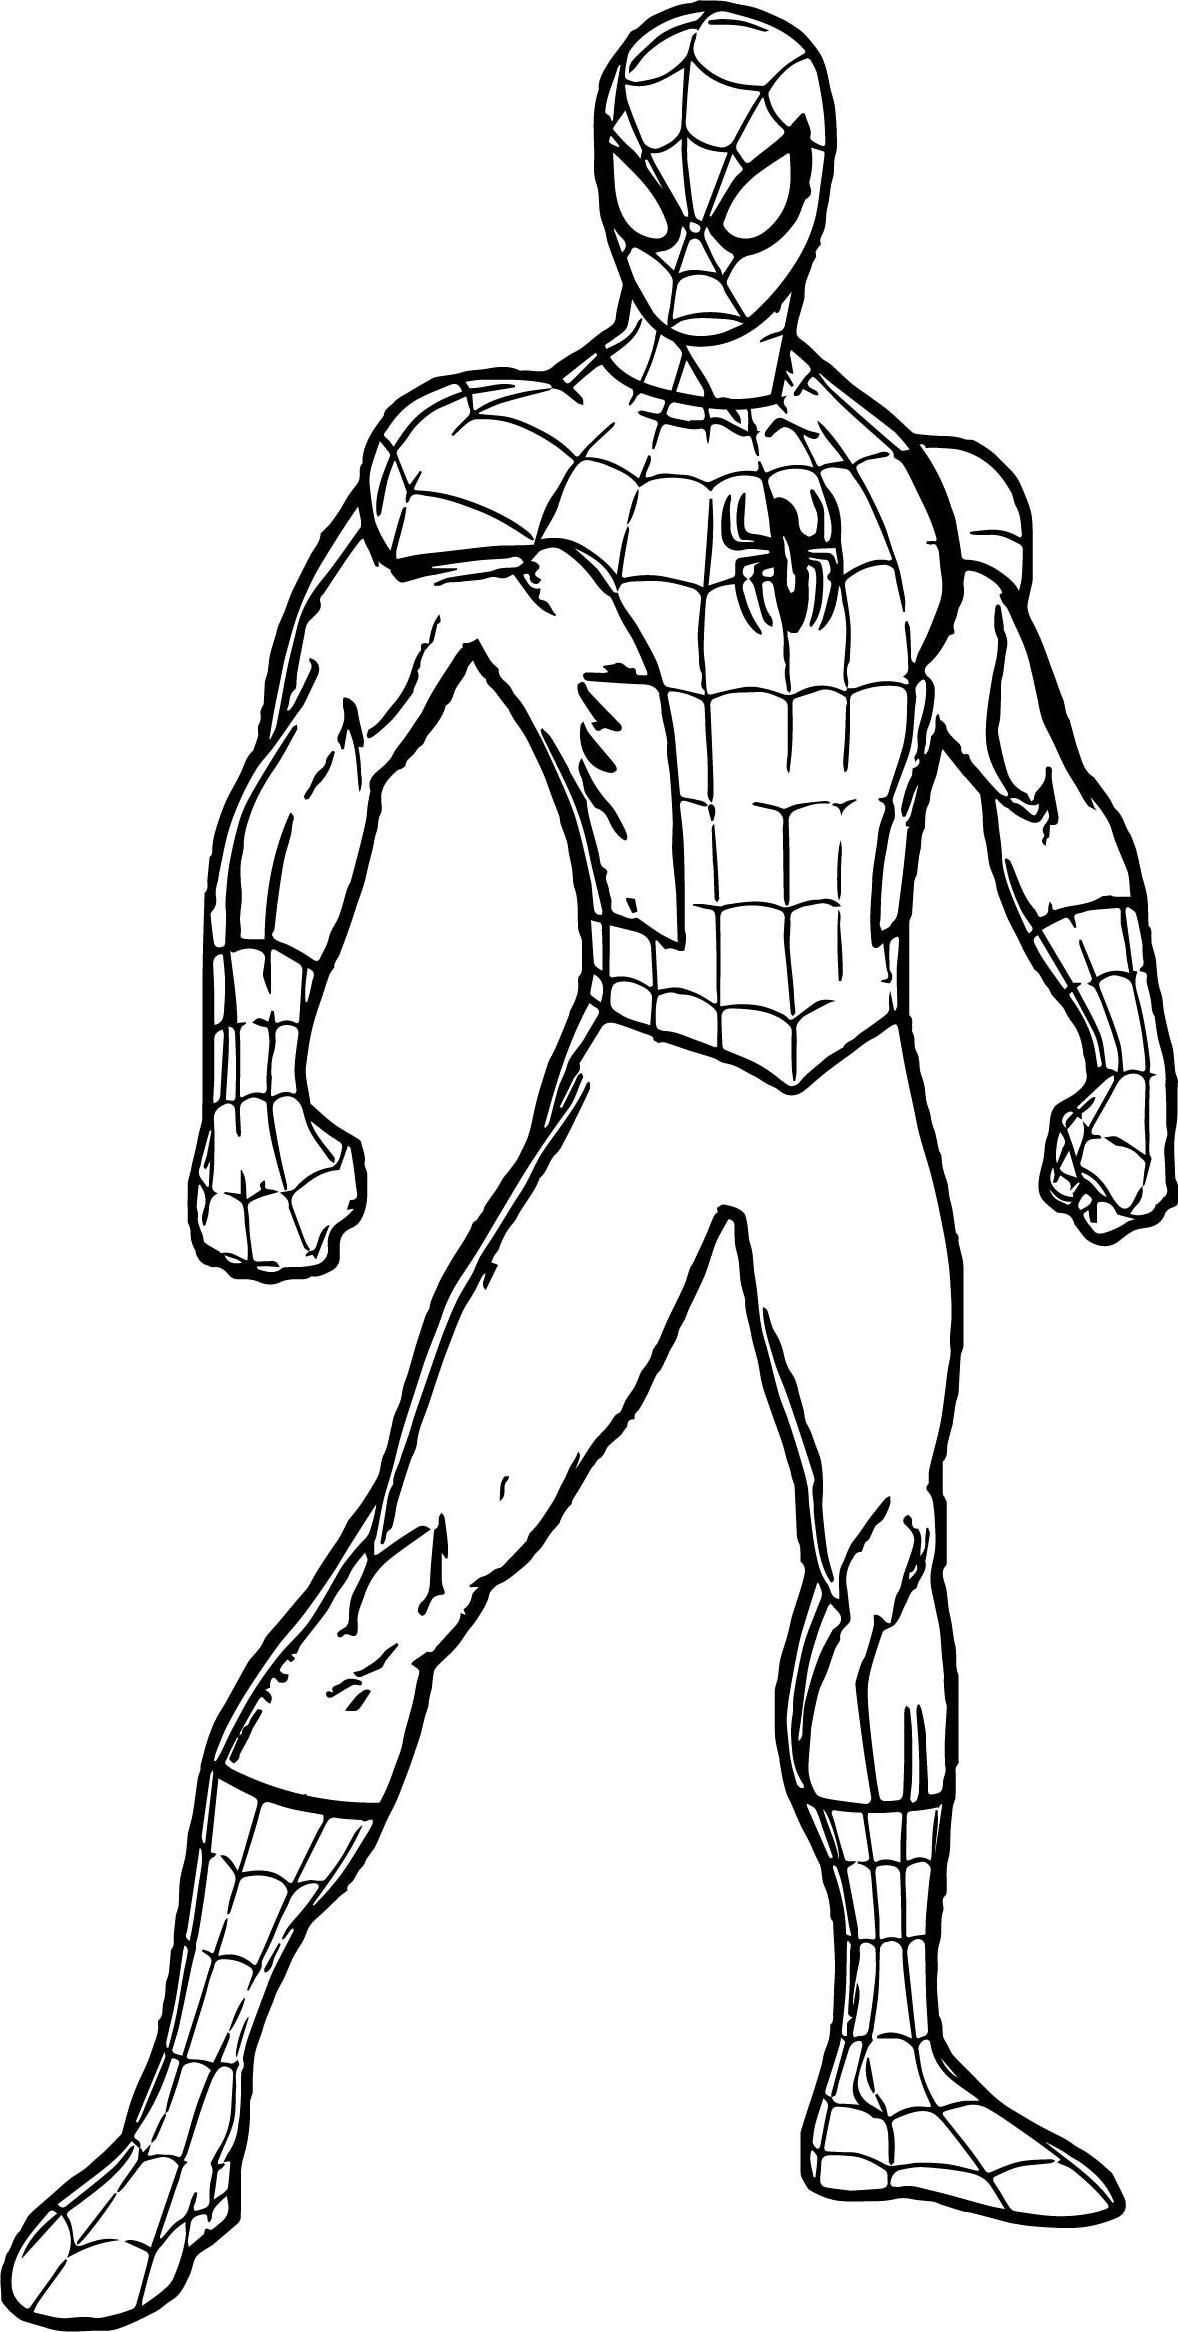 Awesome Coloring Pages Of Spiderman For Preschoolers that ...